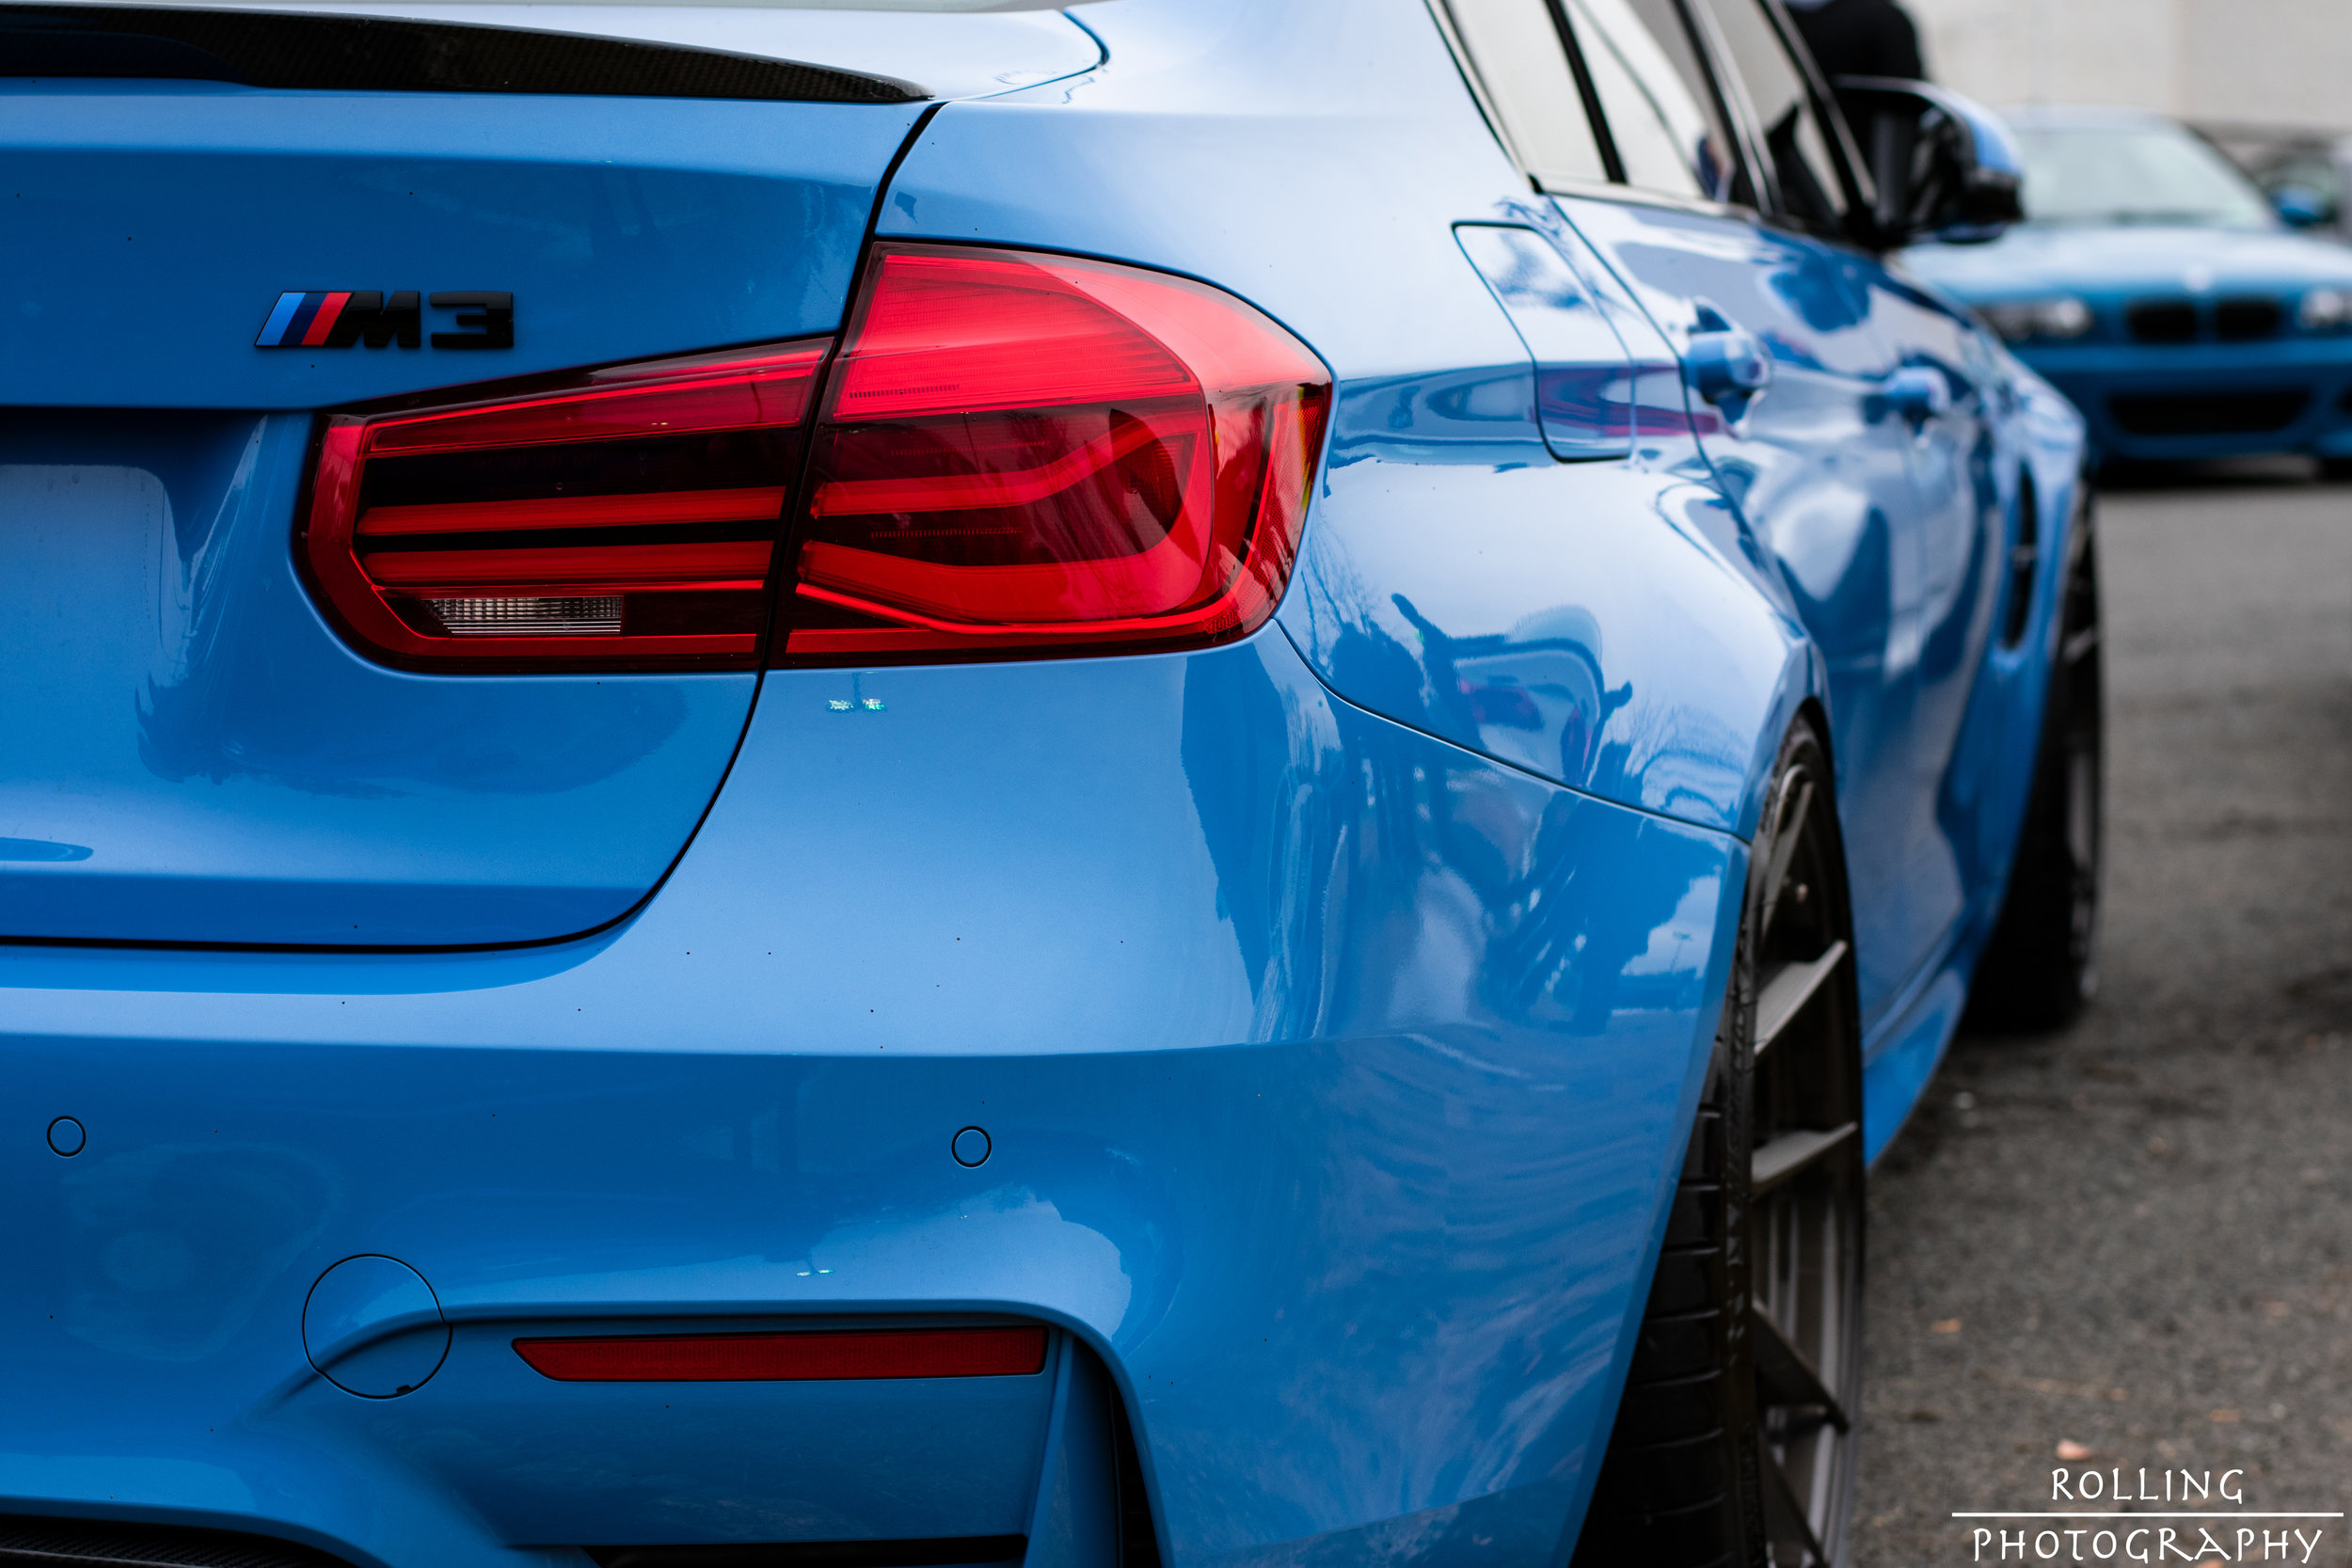 BMW M3 Sedan (F80) (Yas Marina Blue)  ISO 200, 50mm, f / 4.5 Shutter Speed 1/400